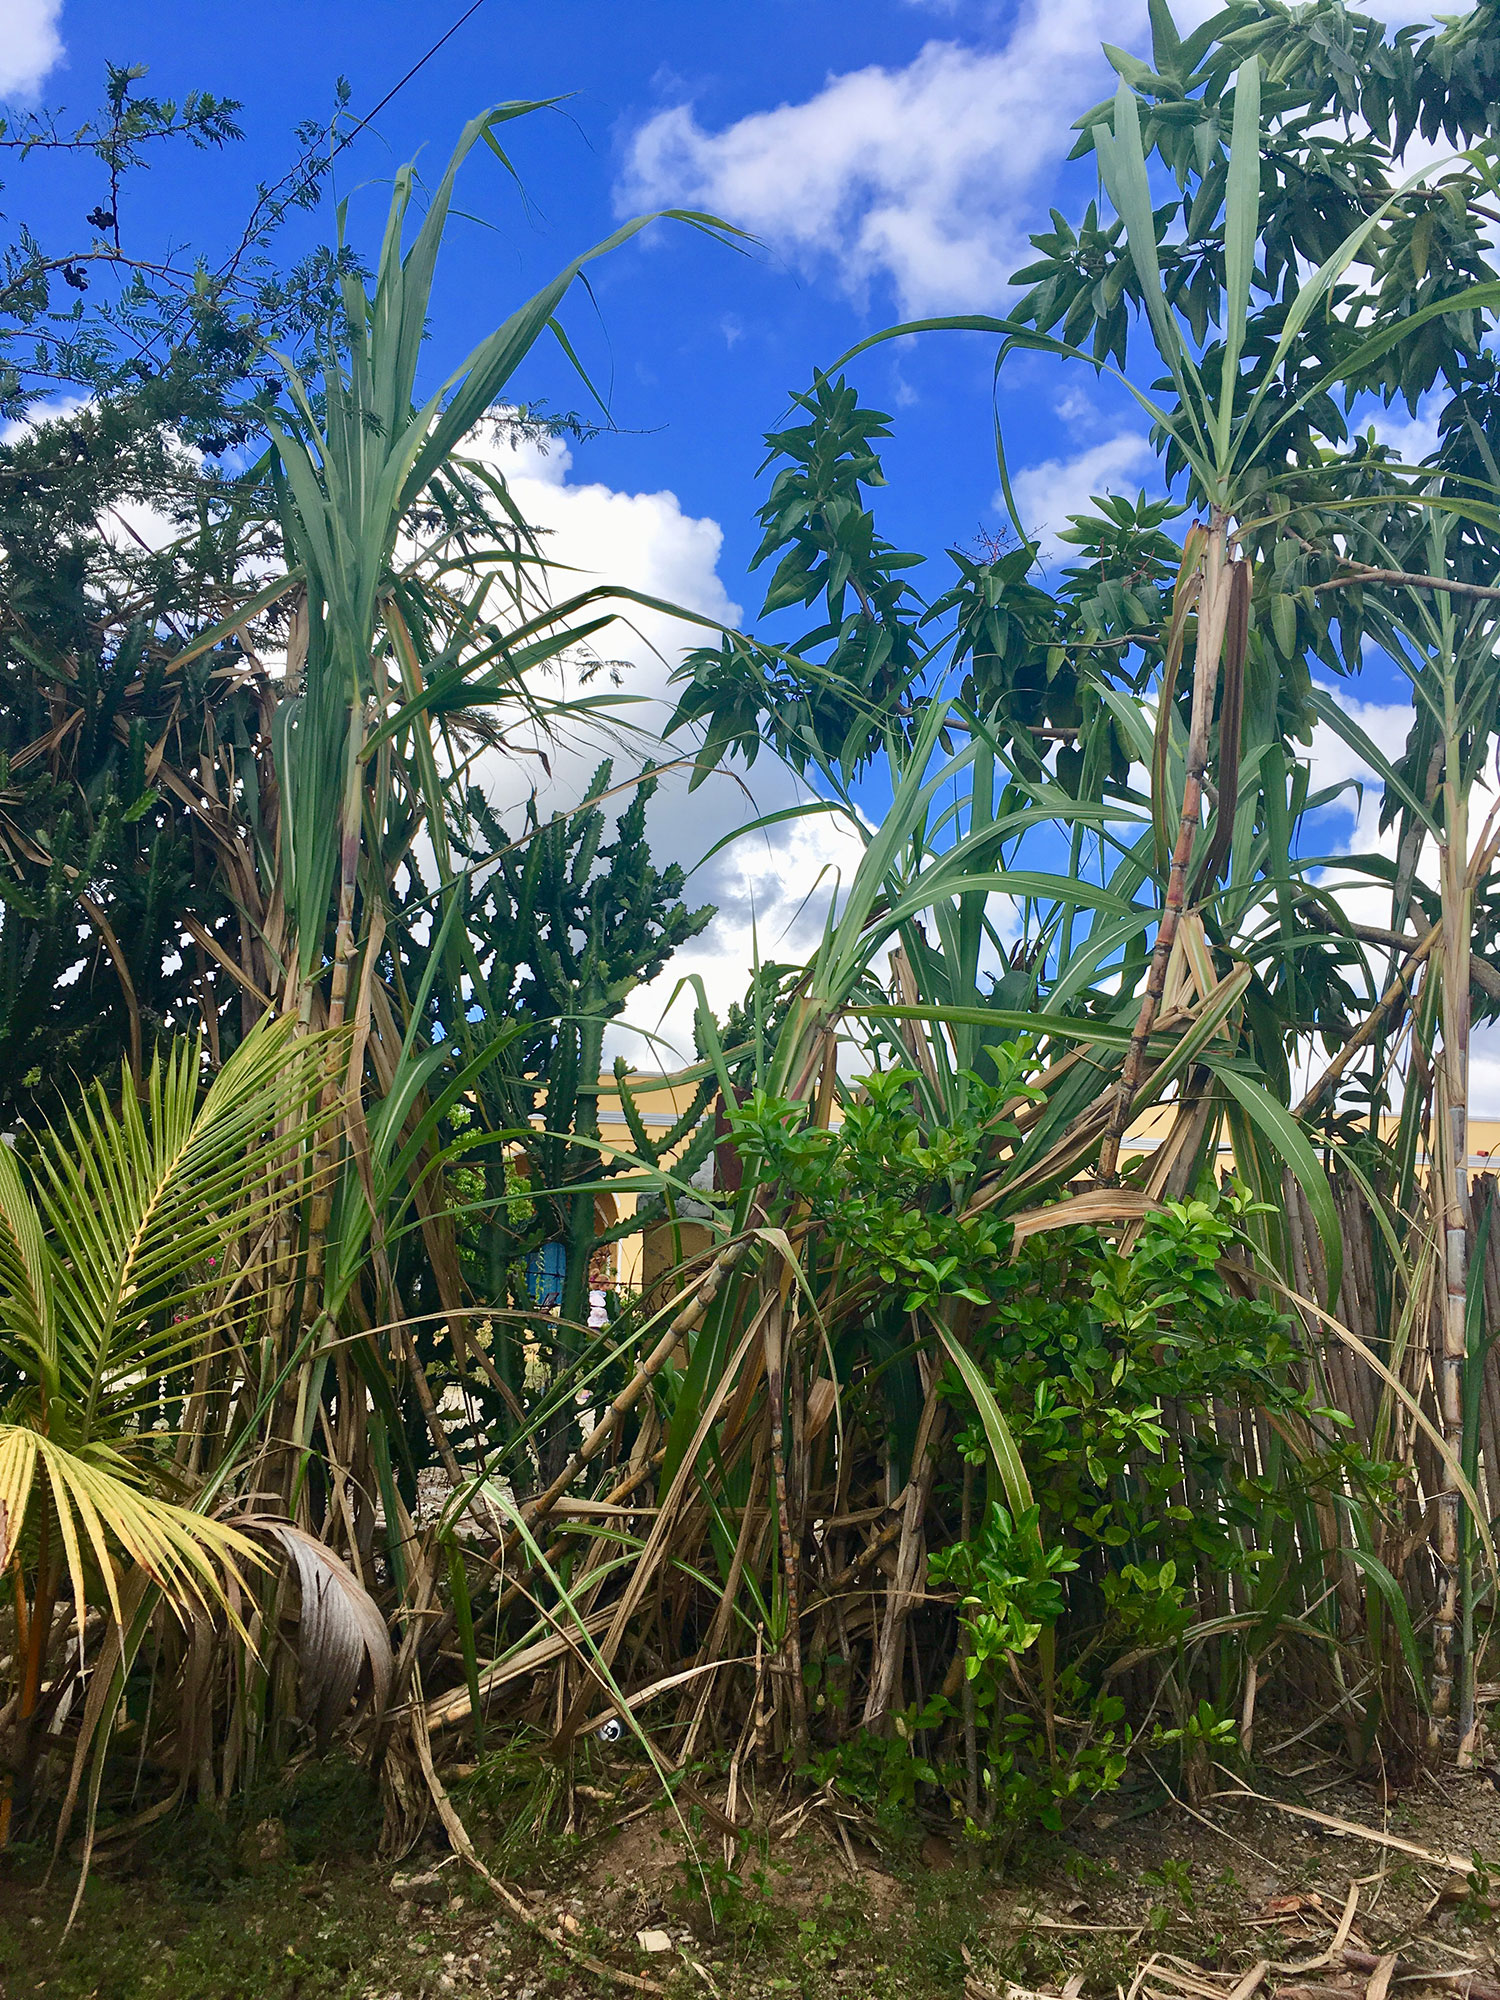 Sugar cane in the village.